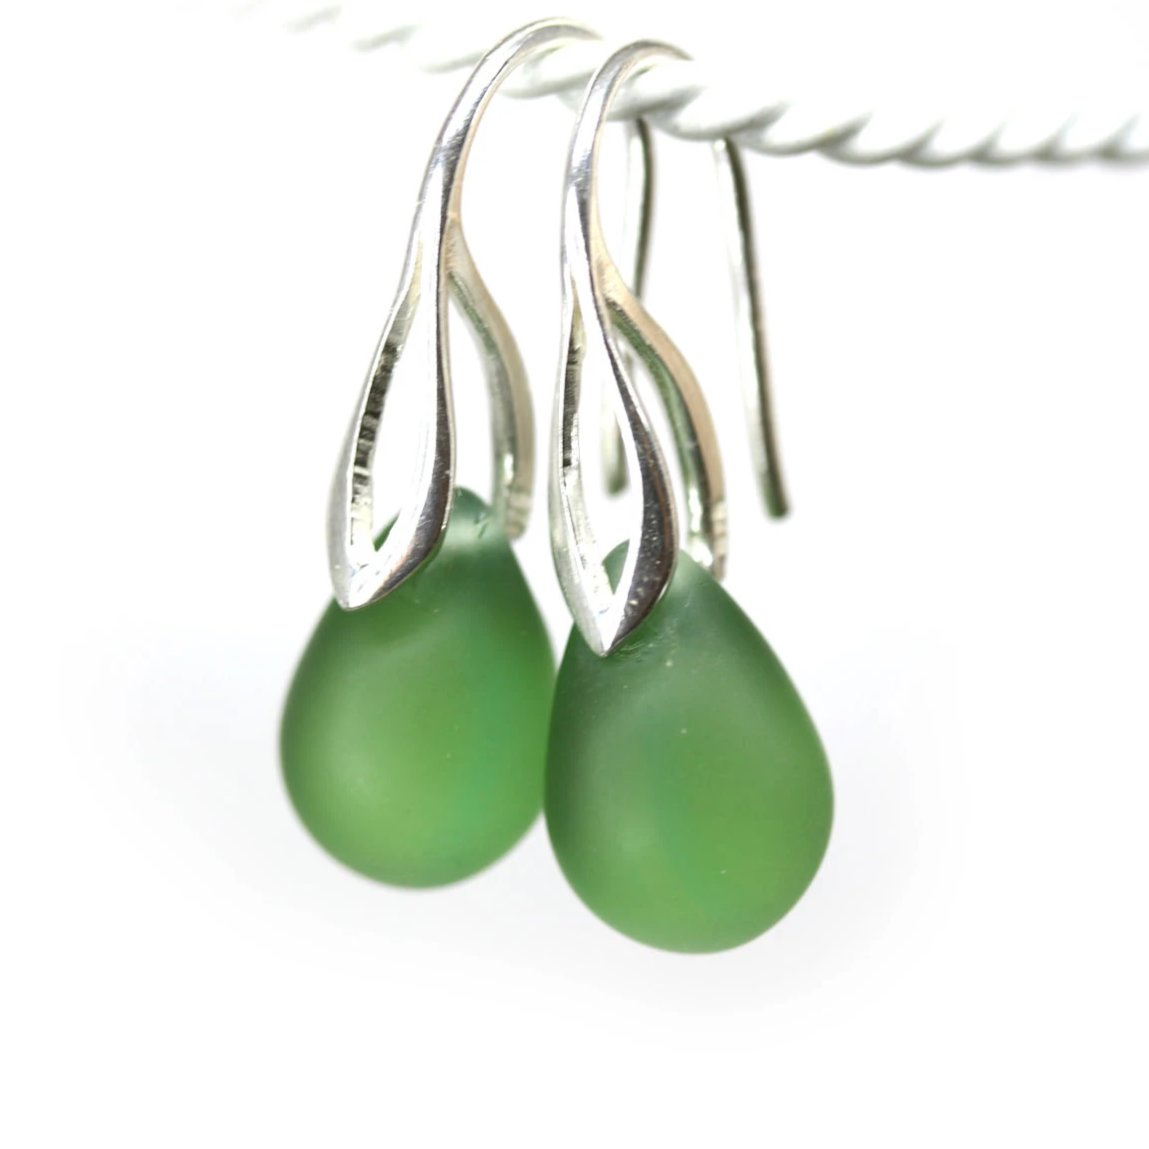 Frosted olive green drop glass earrings Seaglass jewelry